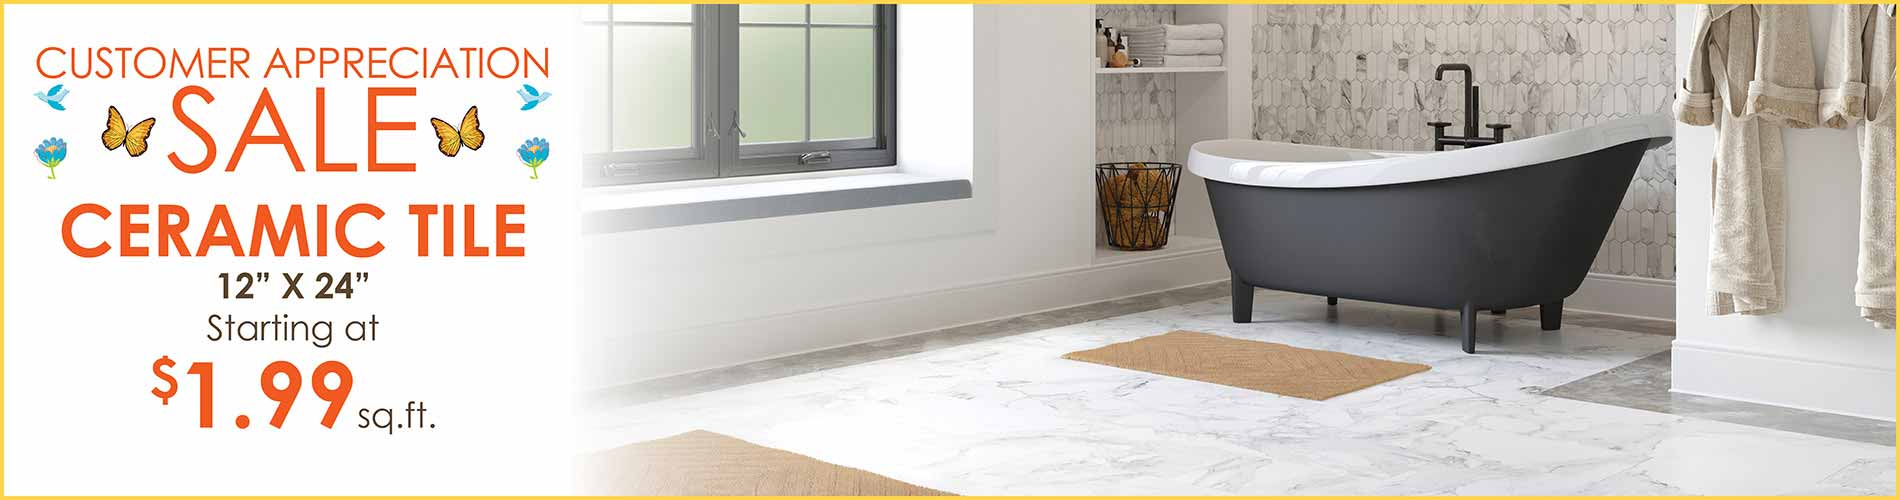 Ceramic Tile Flooring starting at $1.99 sq.ft. during our Customer Appreciation Sale in Wichita